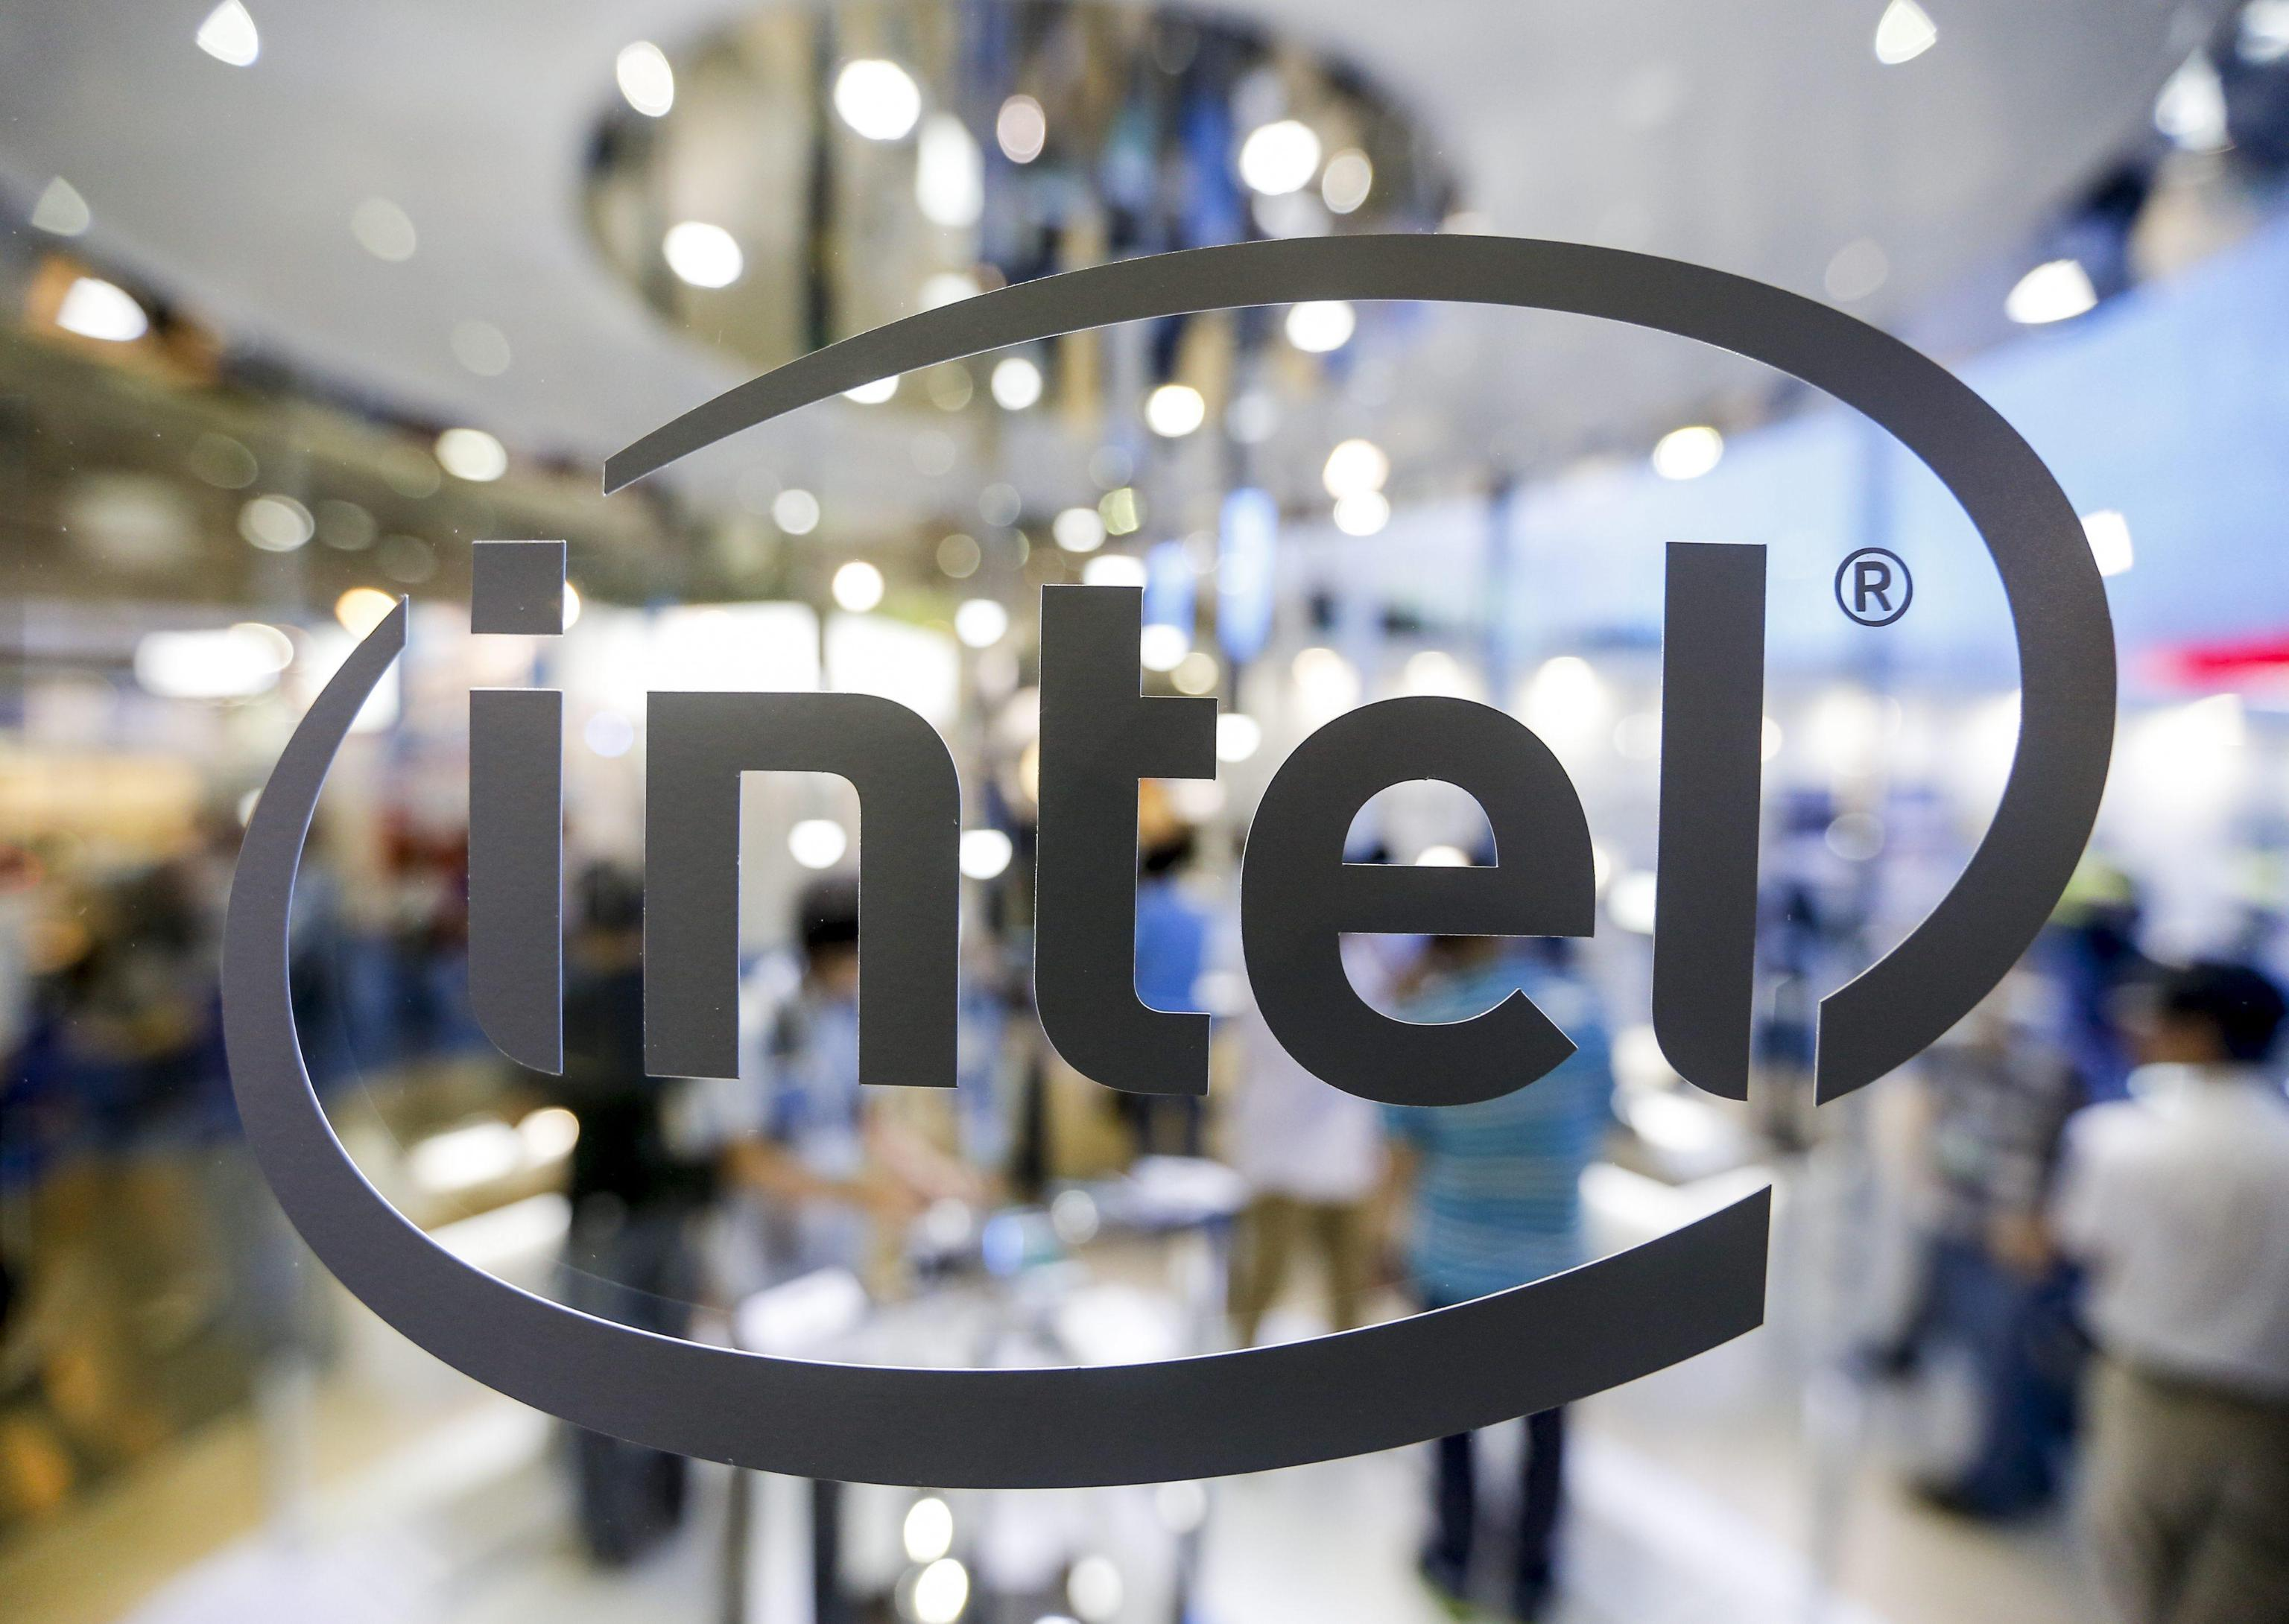 Intel, primo processore ibrido con Amd